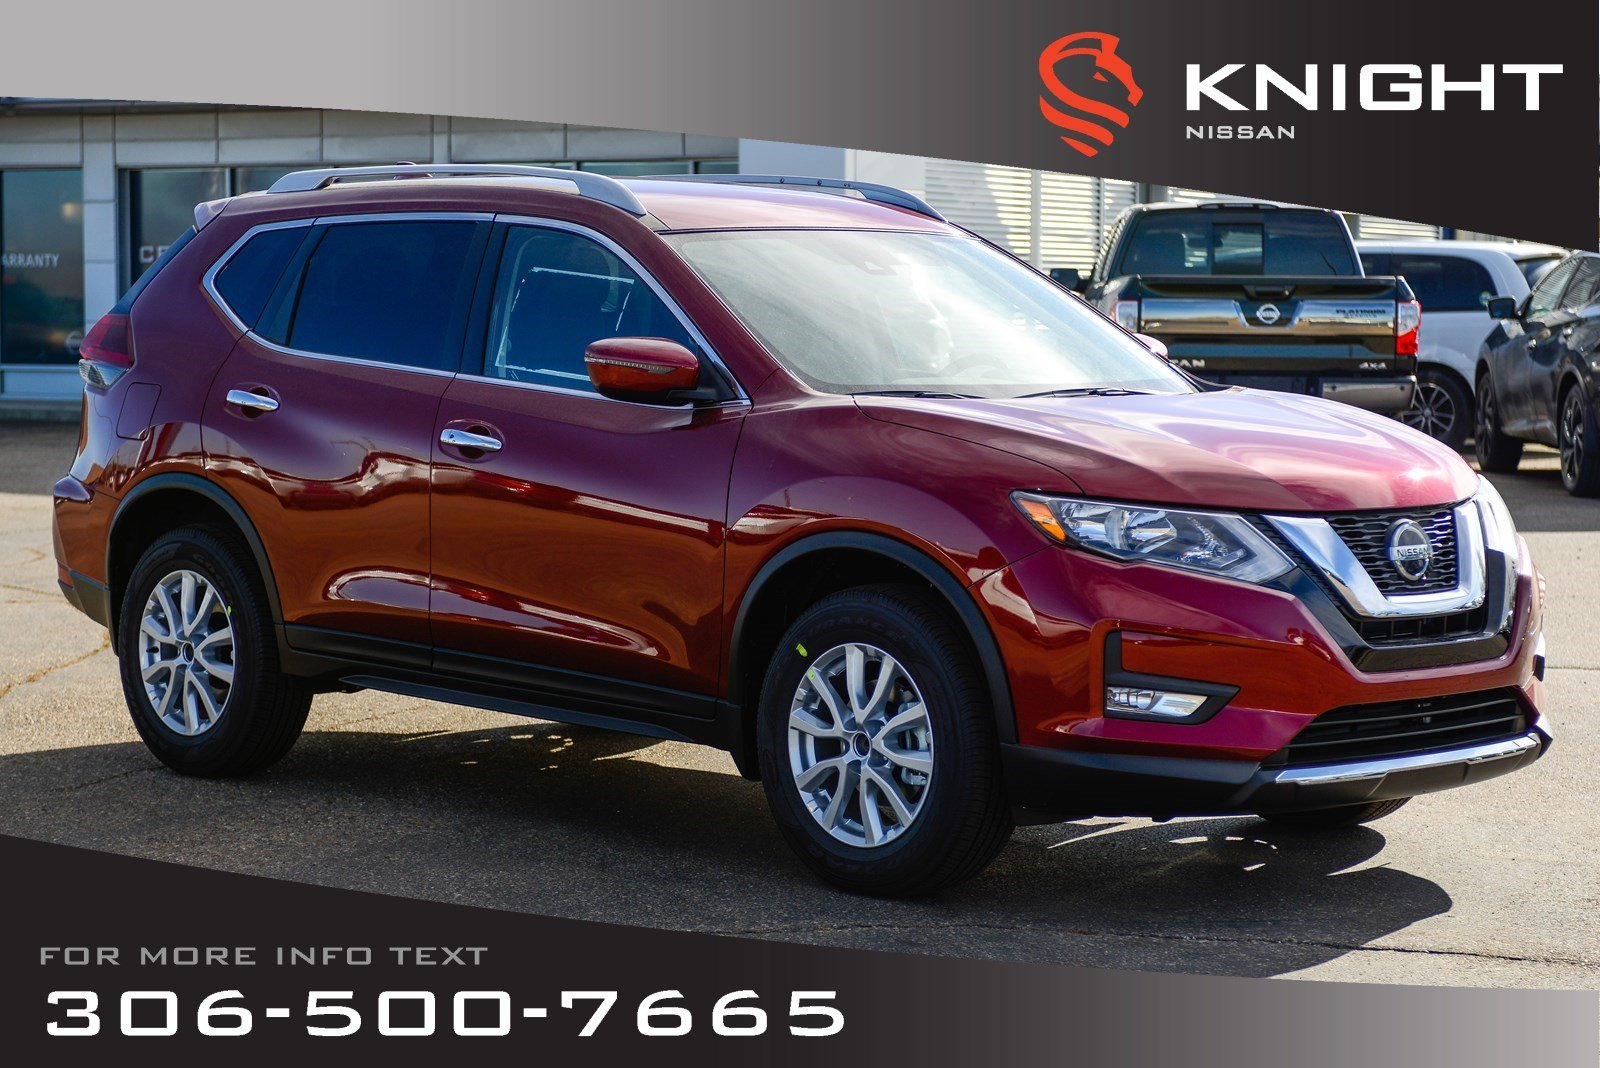 Nissan Rogue Seating >> New 2020 Nissan Rogue Sv Remote Start Heated Seats Back Up Camera Bluetooth Awd